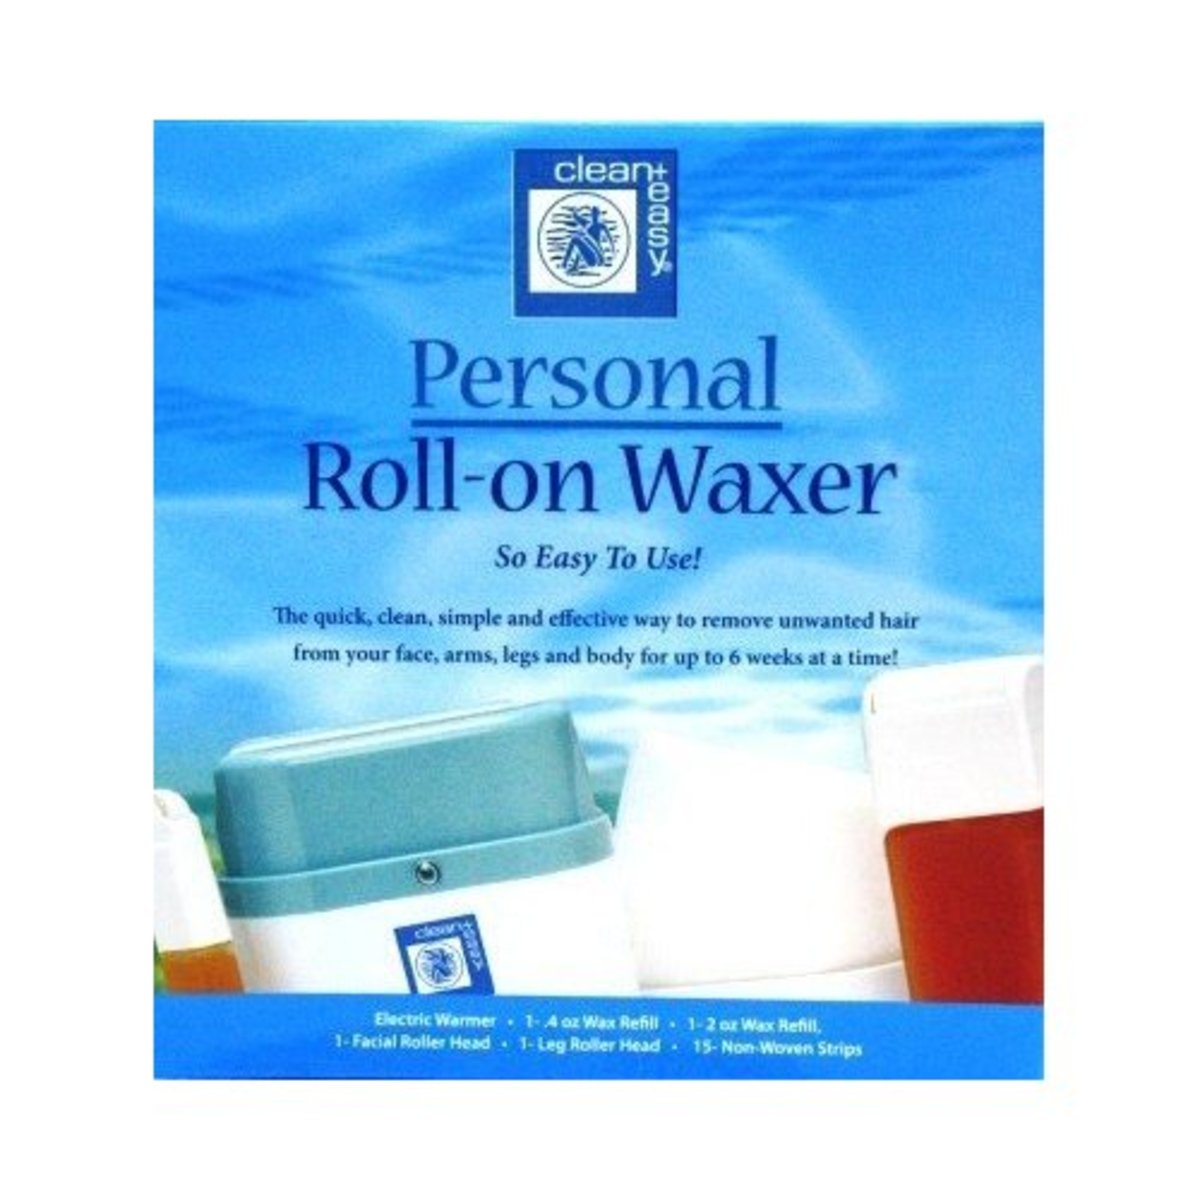 Review: 'Clean + Easy Personal Roll On Waxer'; and how to use it correctly for excellent mess free home-waxing